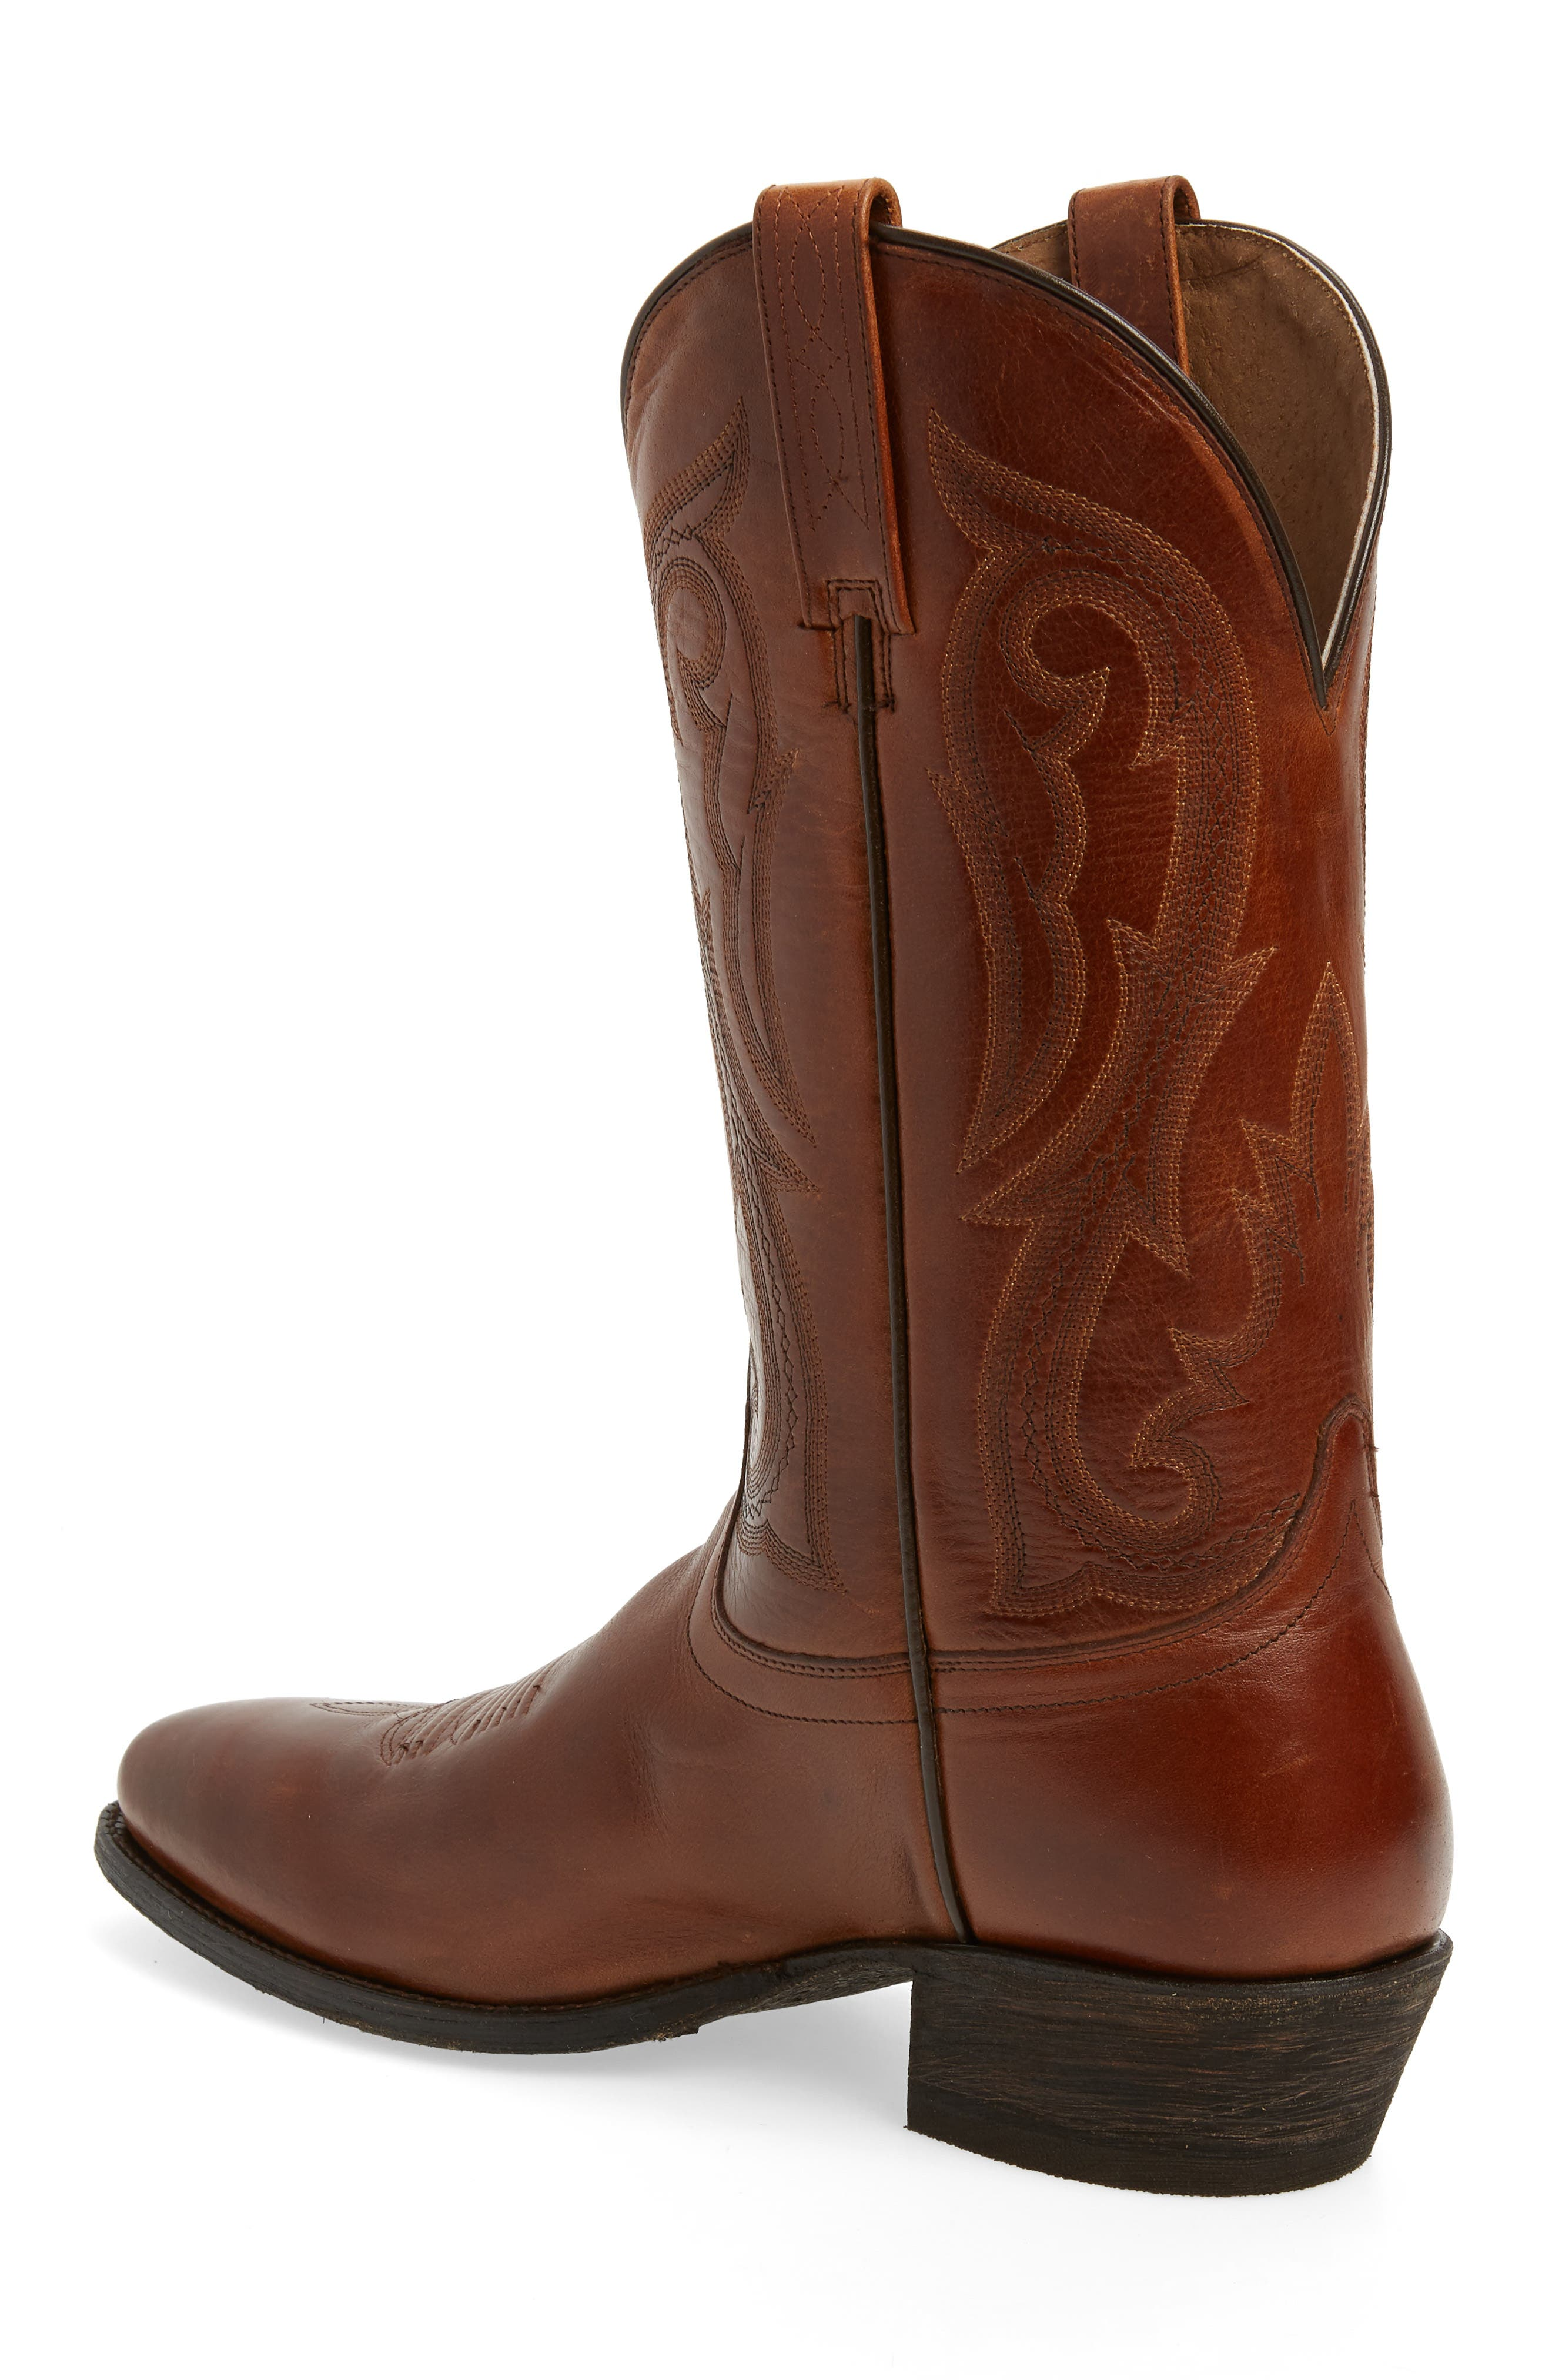 Circuit Tall Cowboy Boot,                             Alternate thumbnail 2, color,                             Spruced Cognac Leather